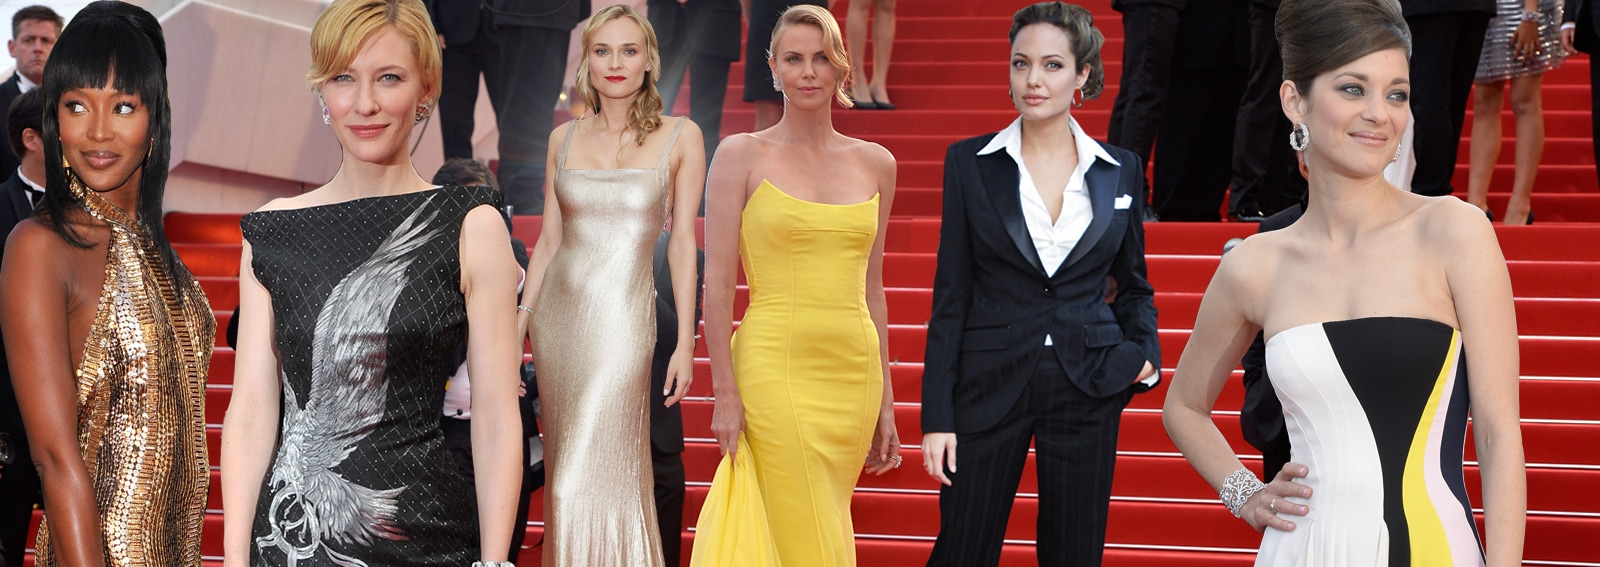 COVER cannes best dressed di sempreDESKTOP